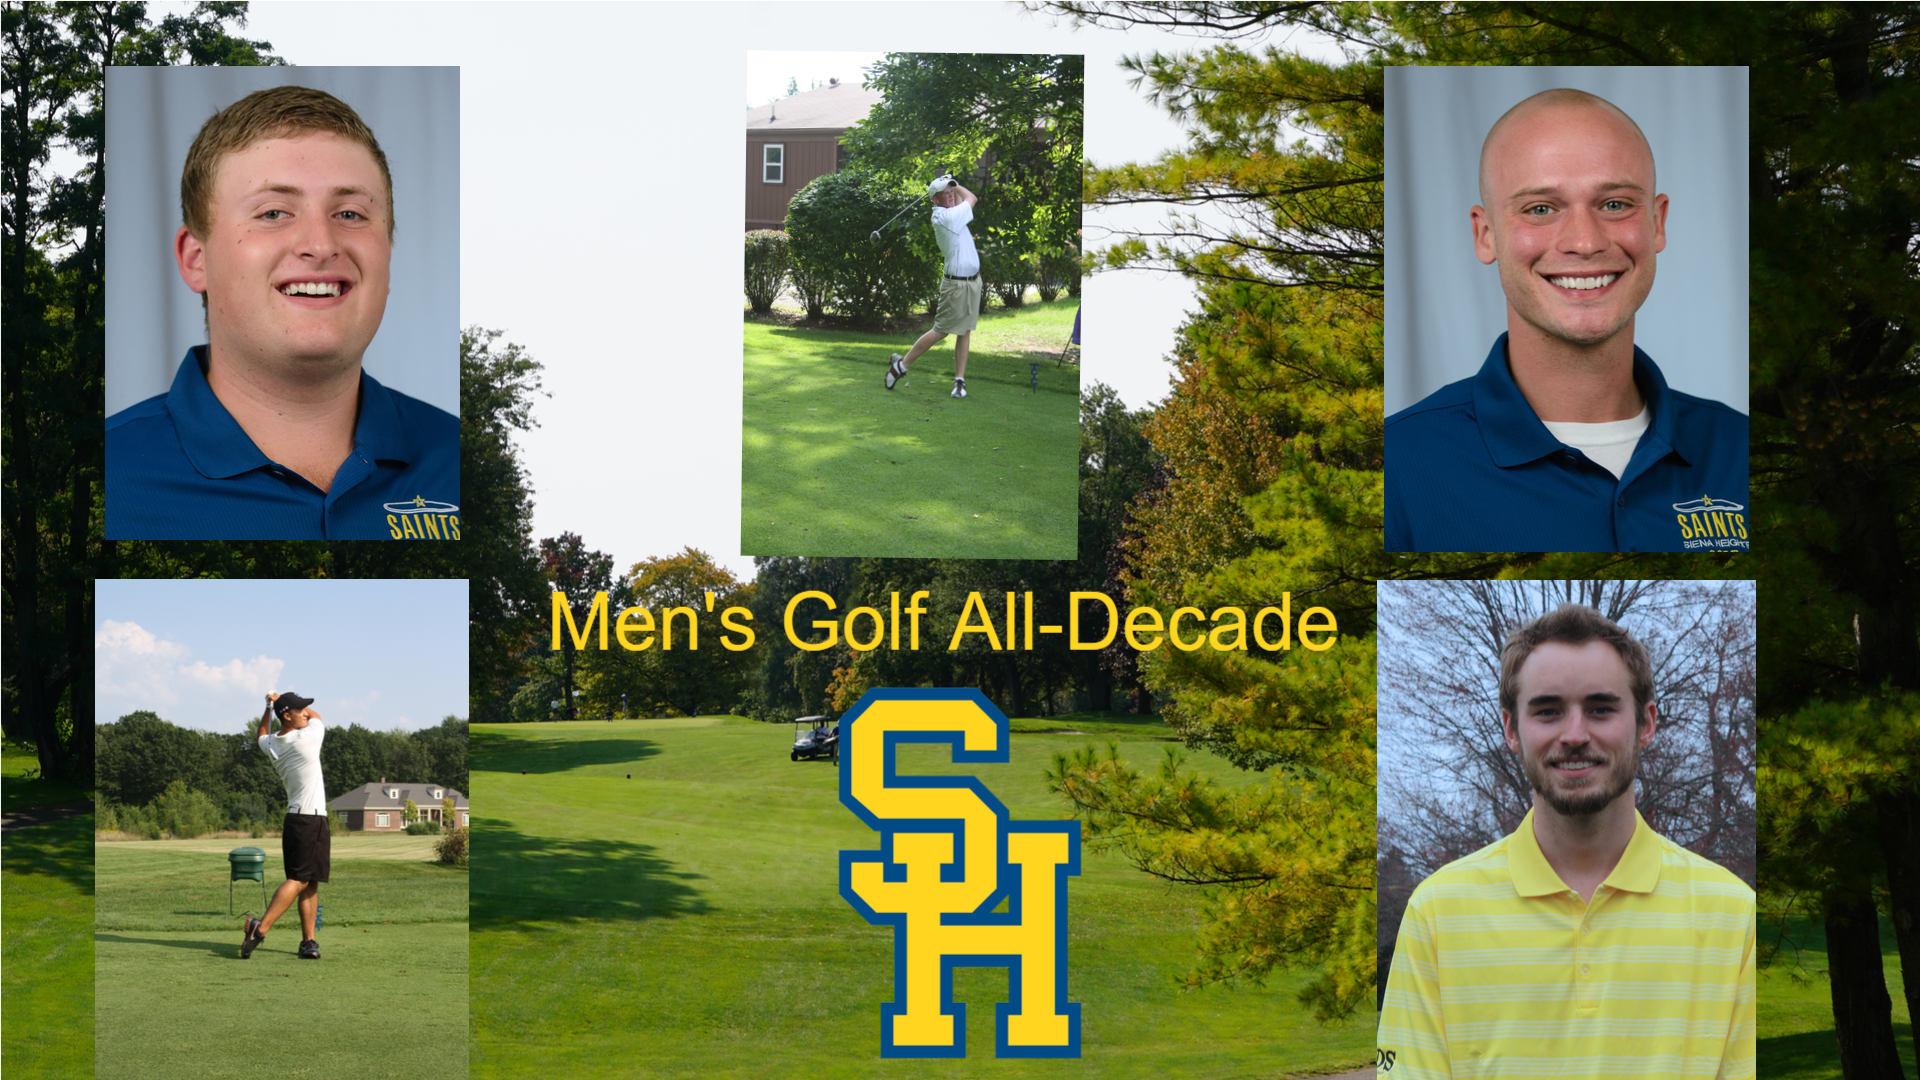 The Siena Heights All-Decade Series: Men's Golf